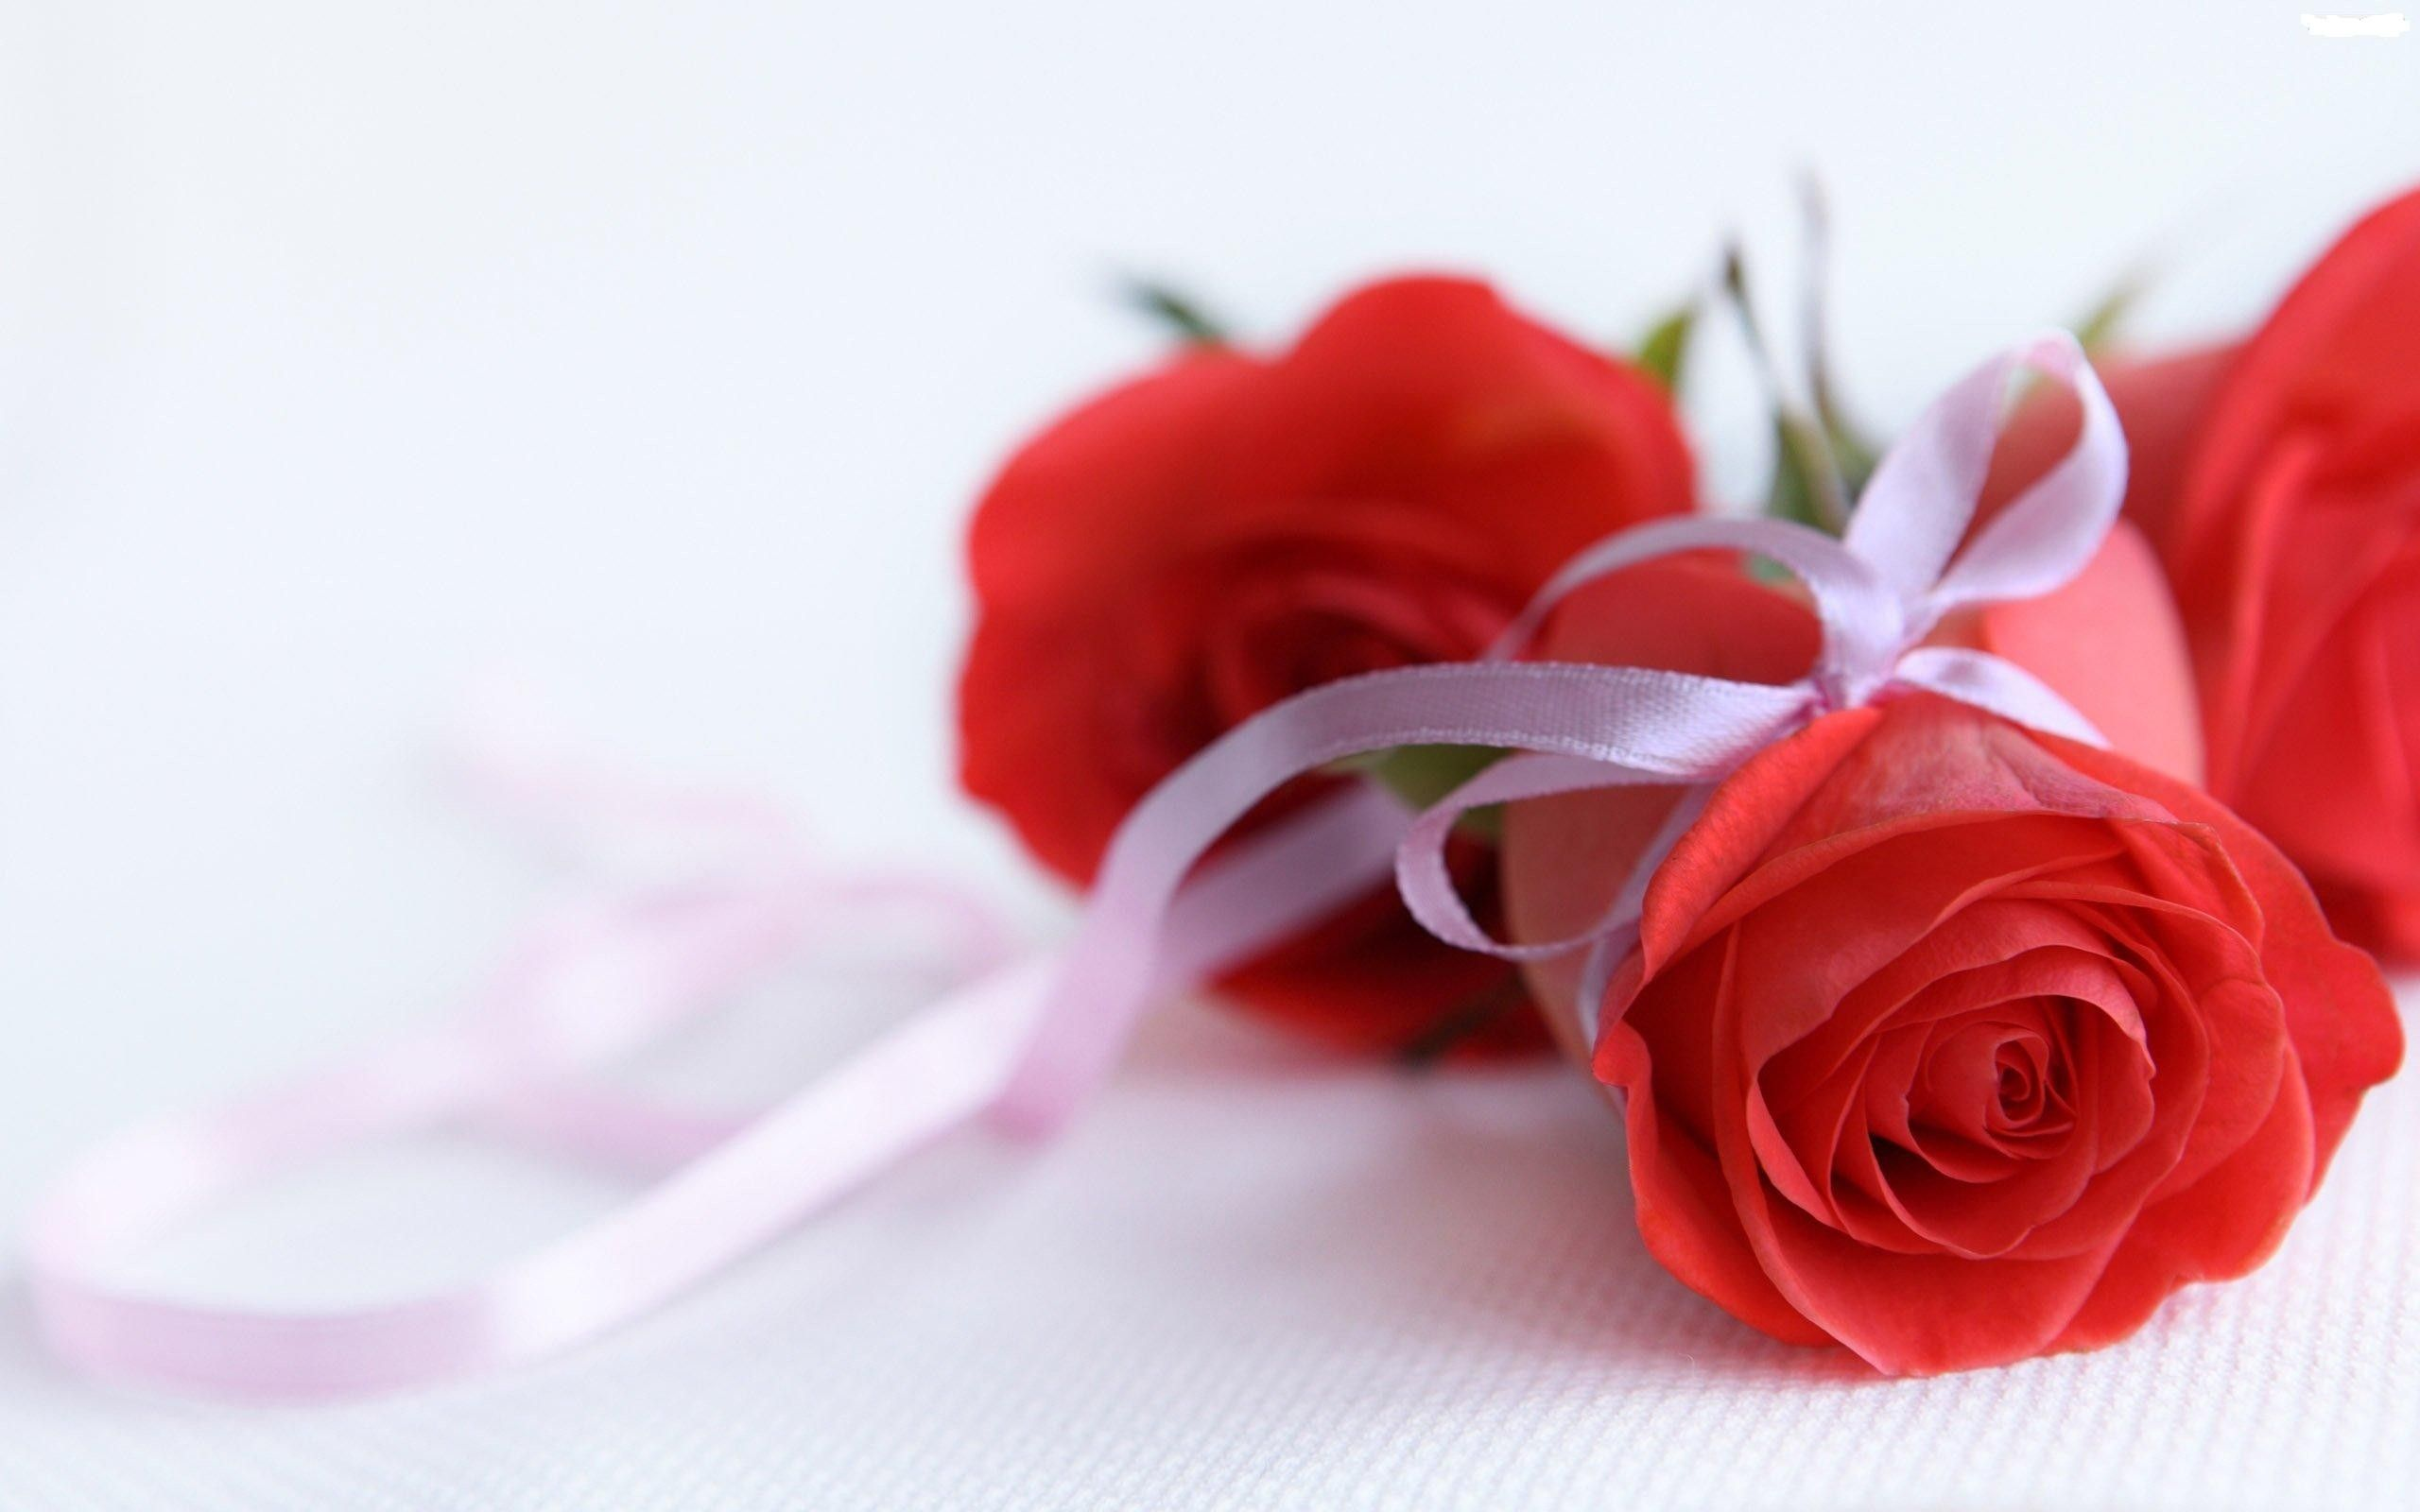 Widescreen Love Flower Afari With Rose New Lmages Full Hd Pics For ...